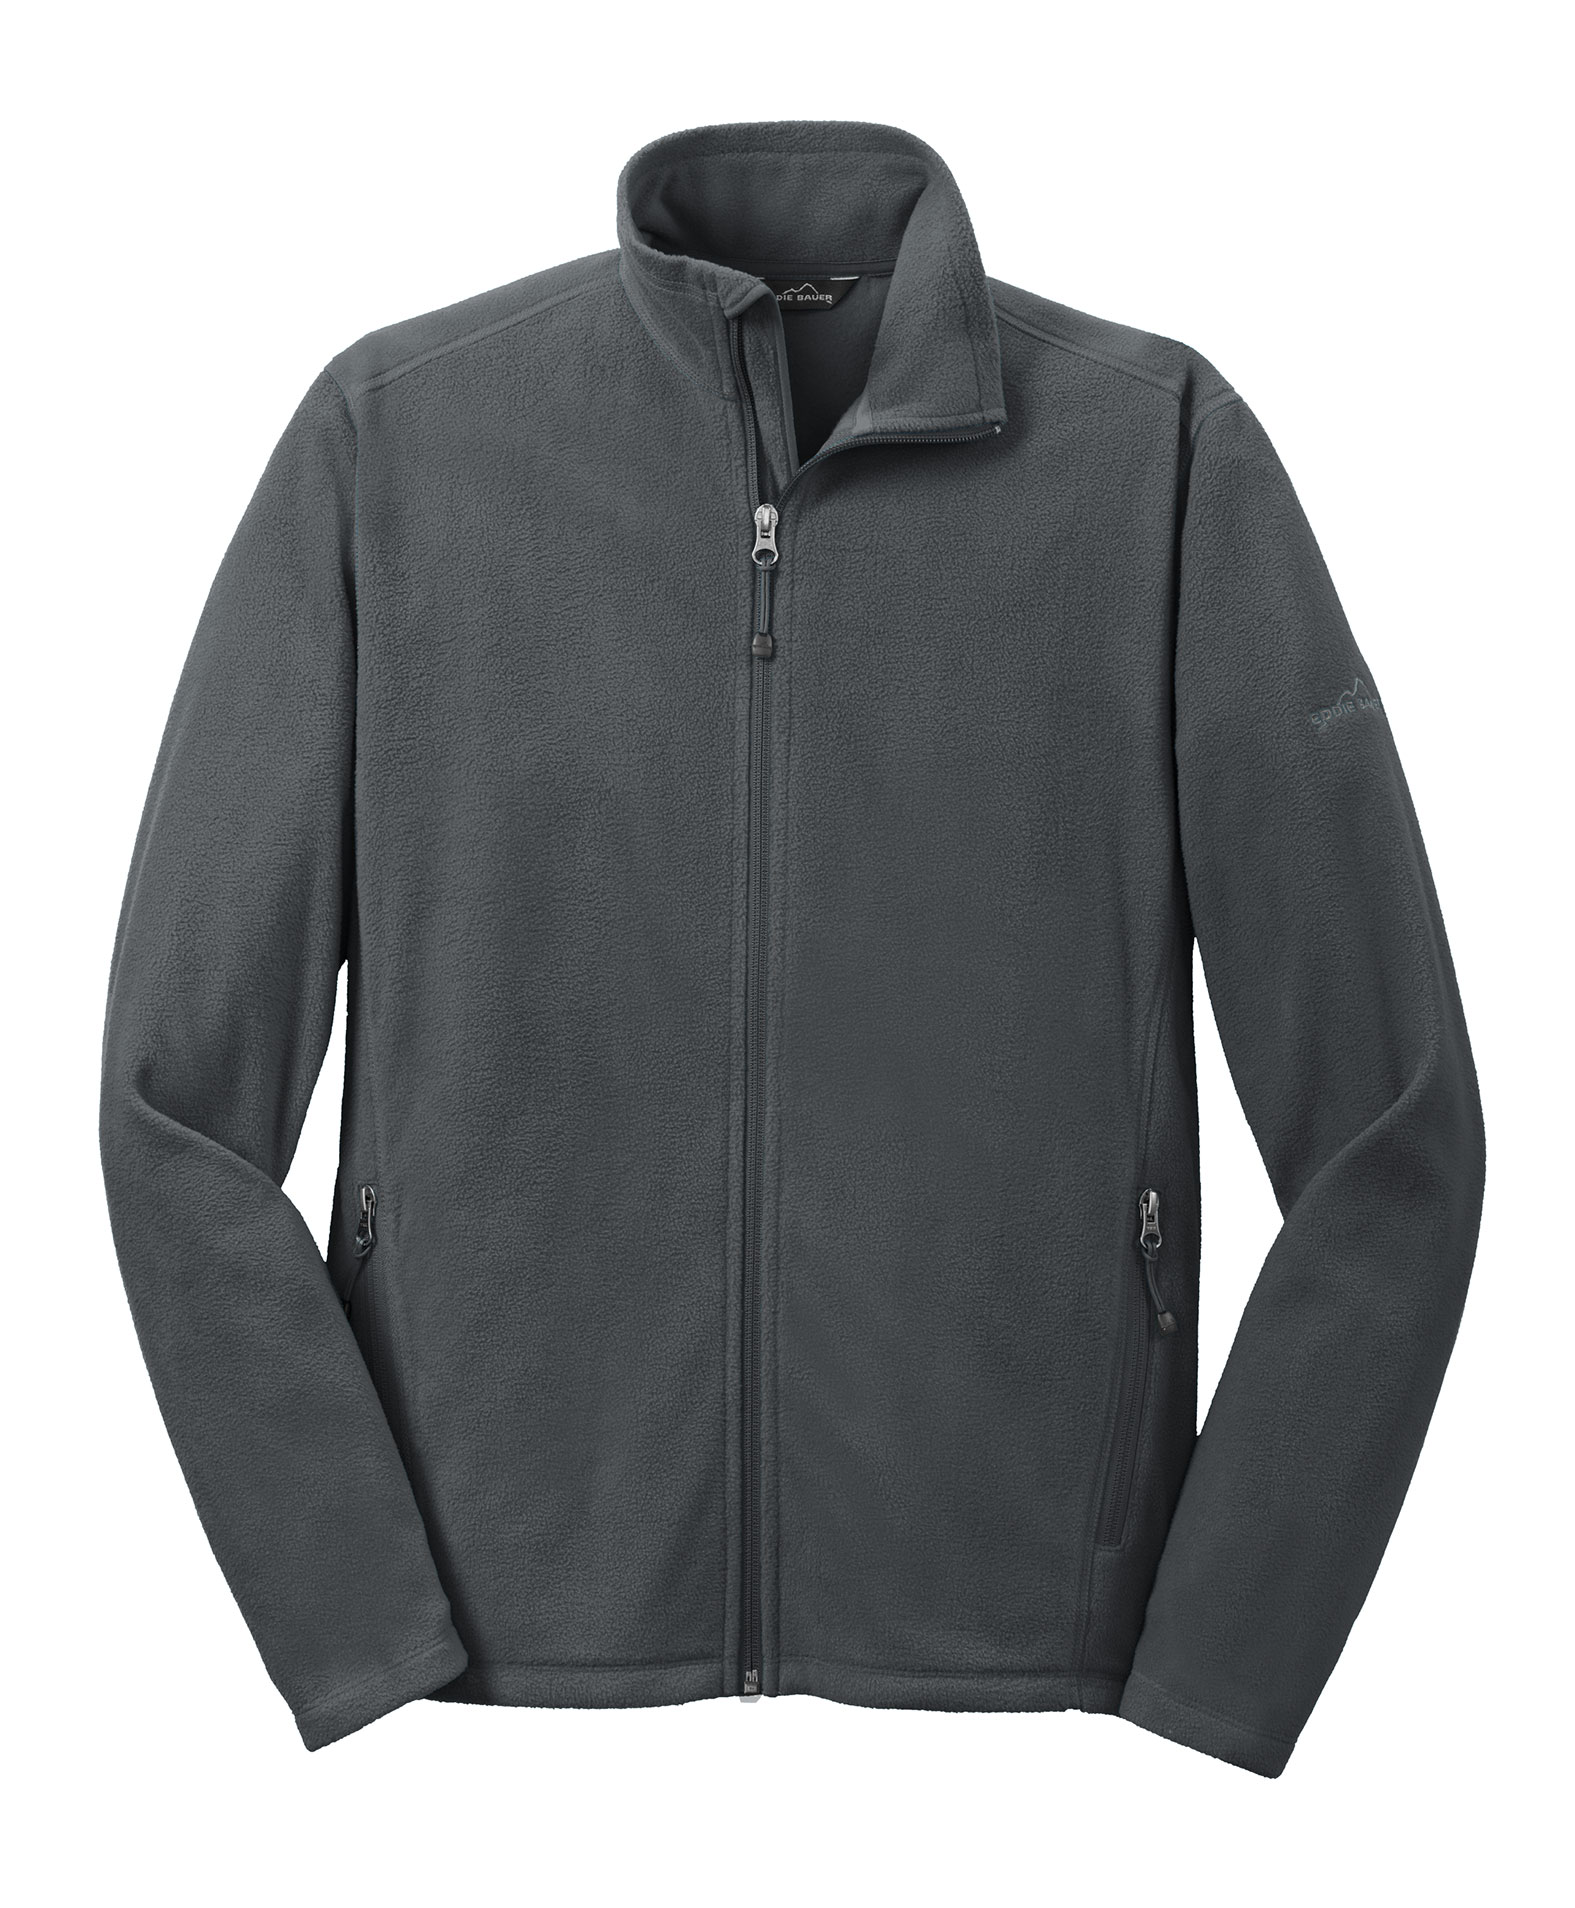 8939a719 Custom Eddie Bauer® Full-Zip Microfleece Jacket Mens